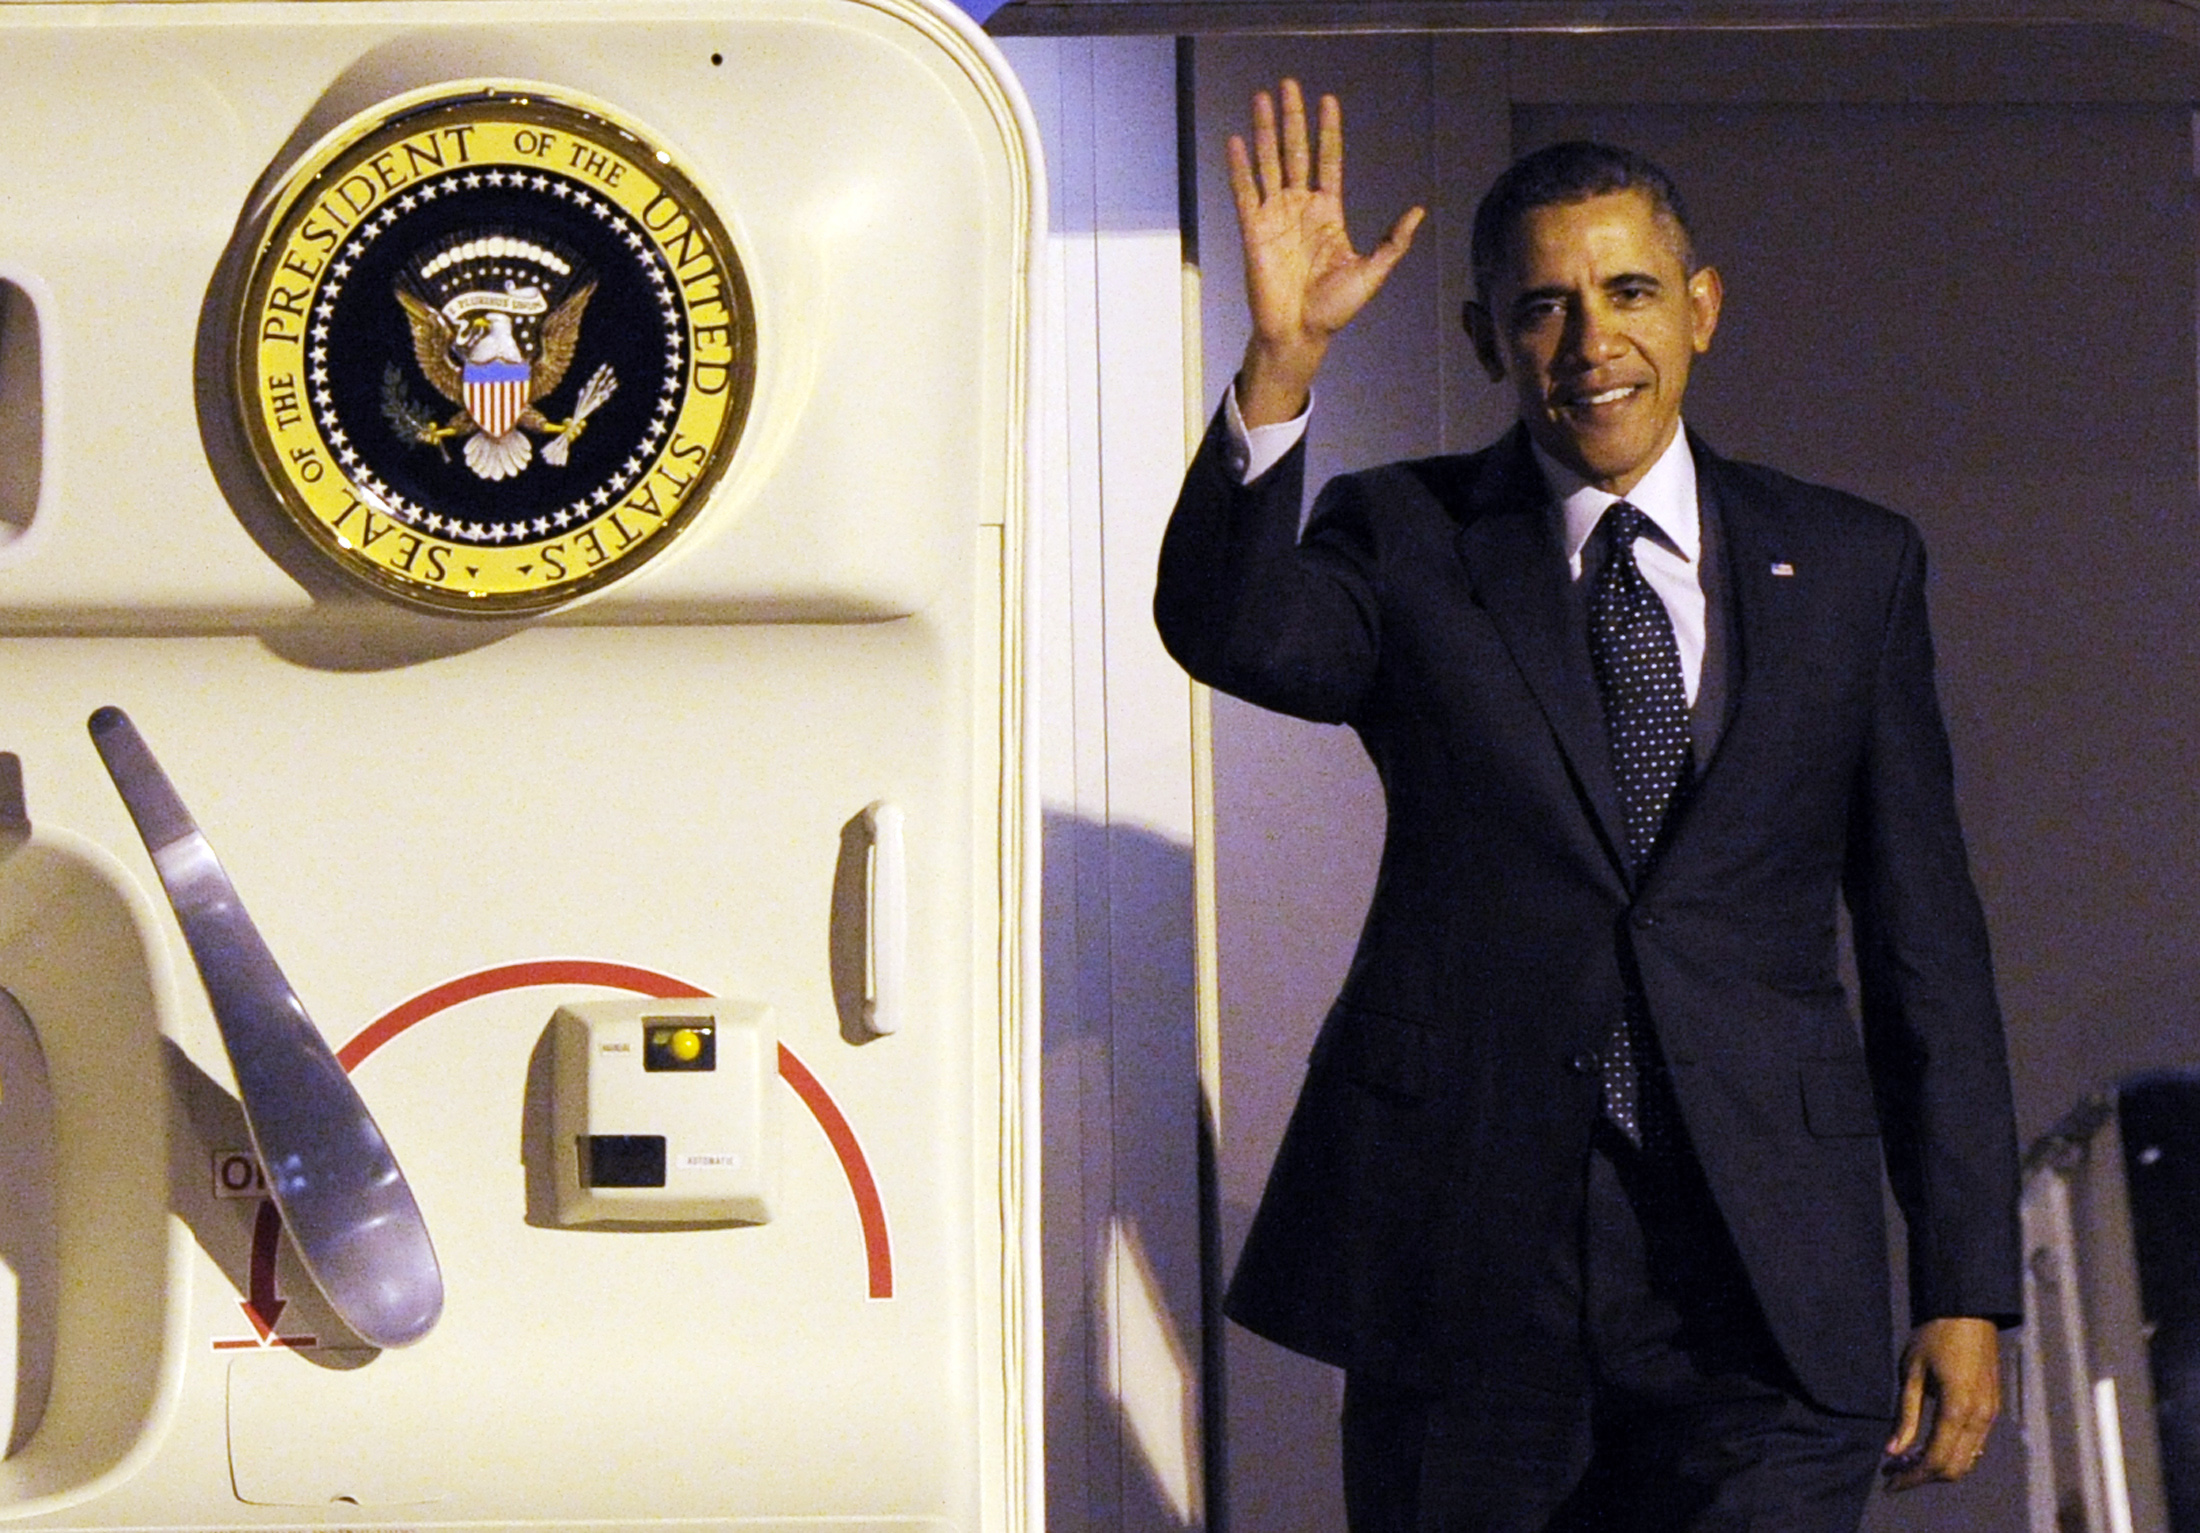 U.S. President Obama arrives at Brussels Airport